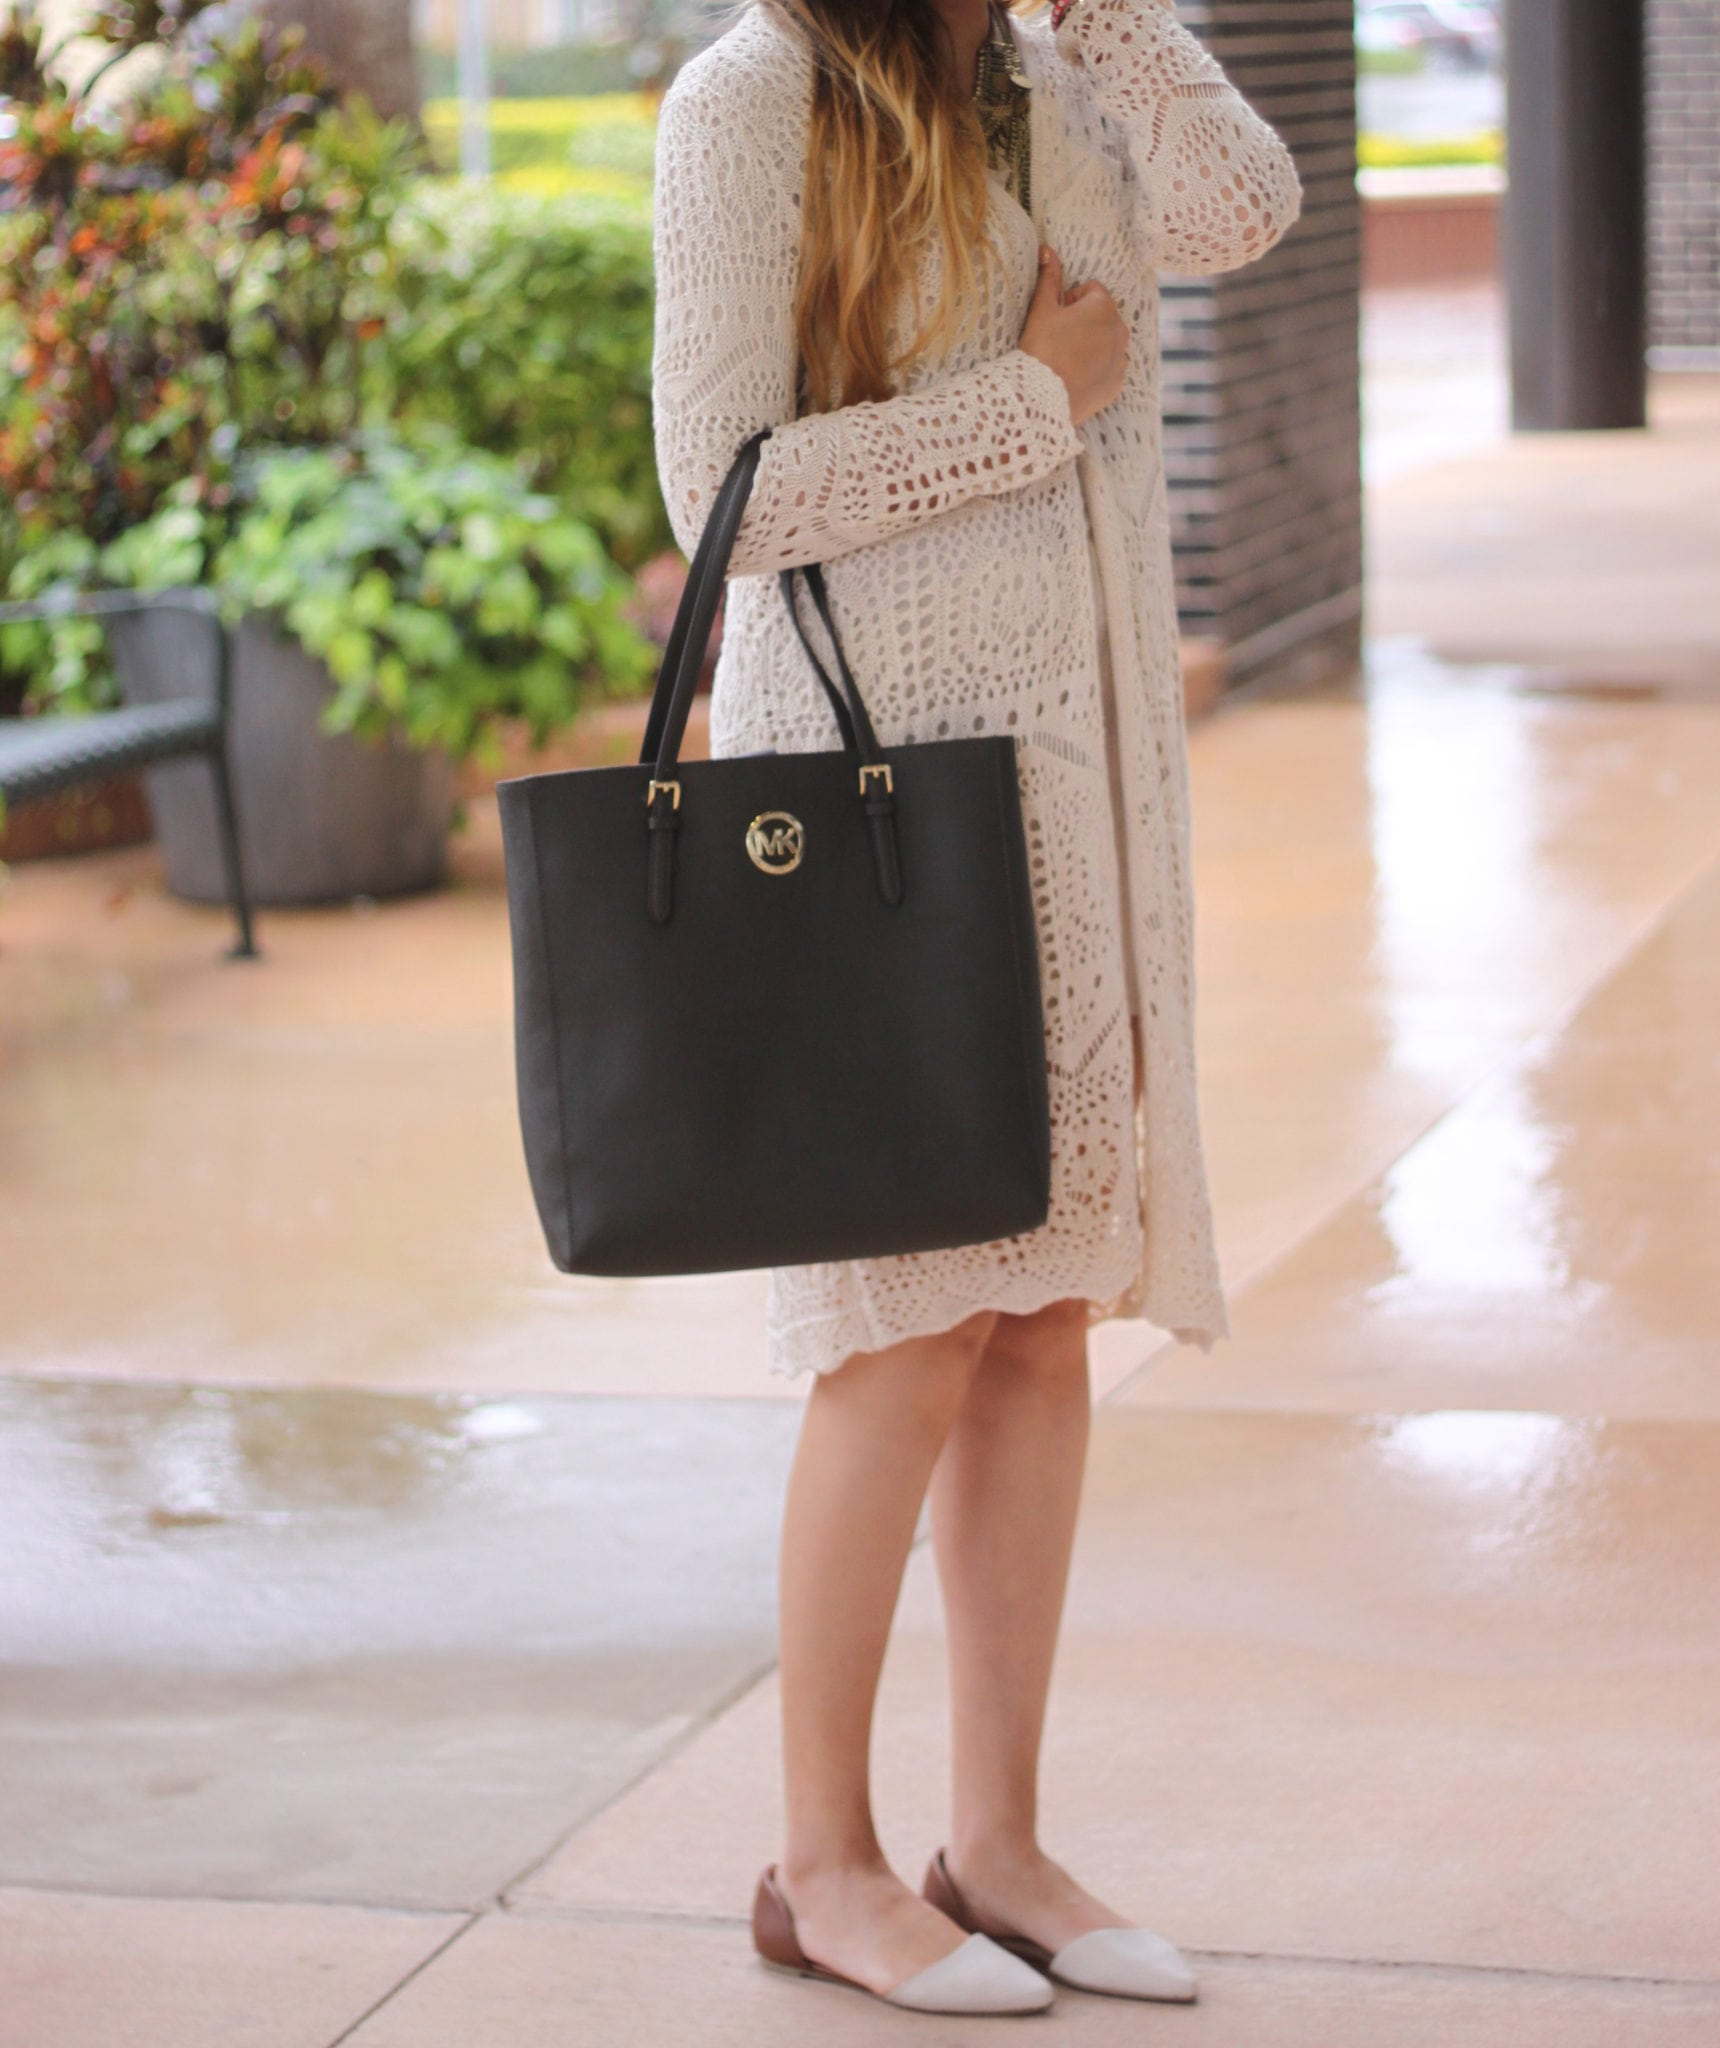 Mash Elle beauty blogger naturals neutral colors fashion | nude cardigan | black purse